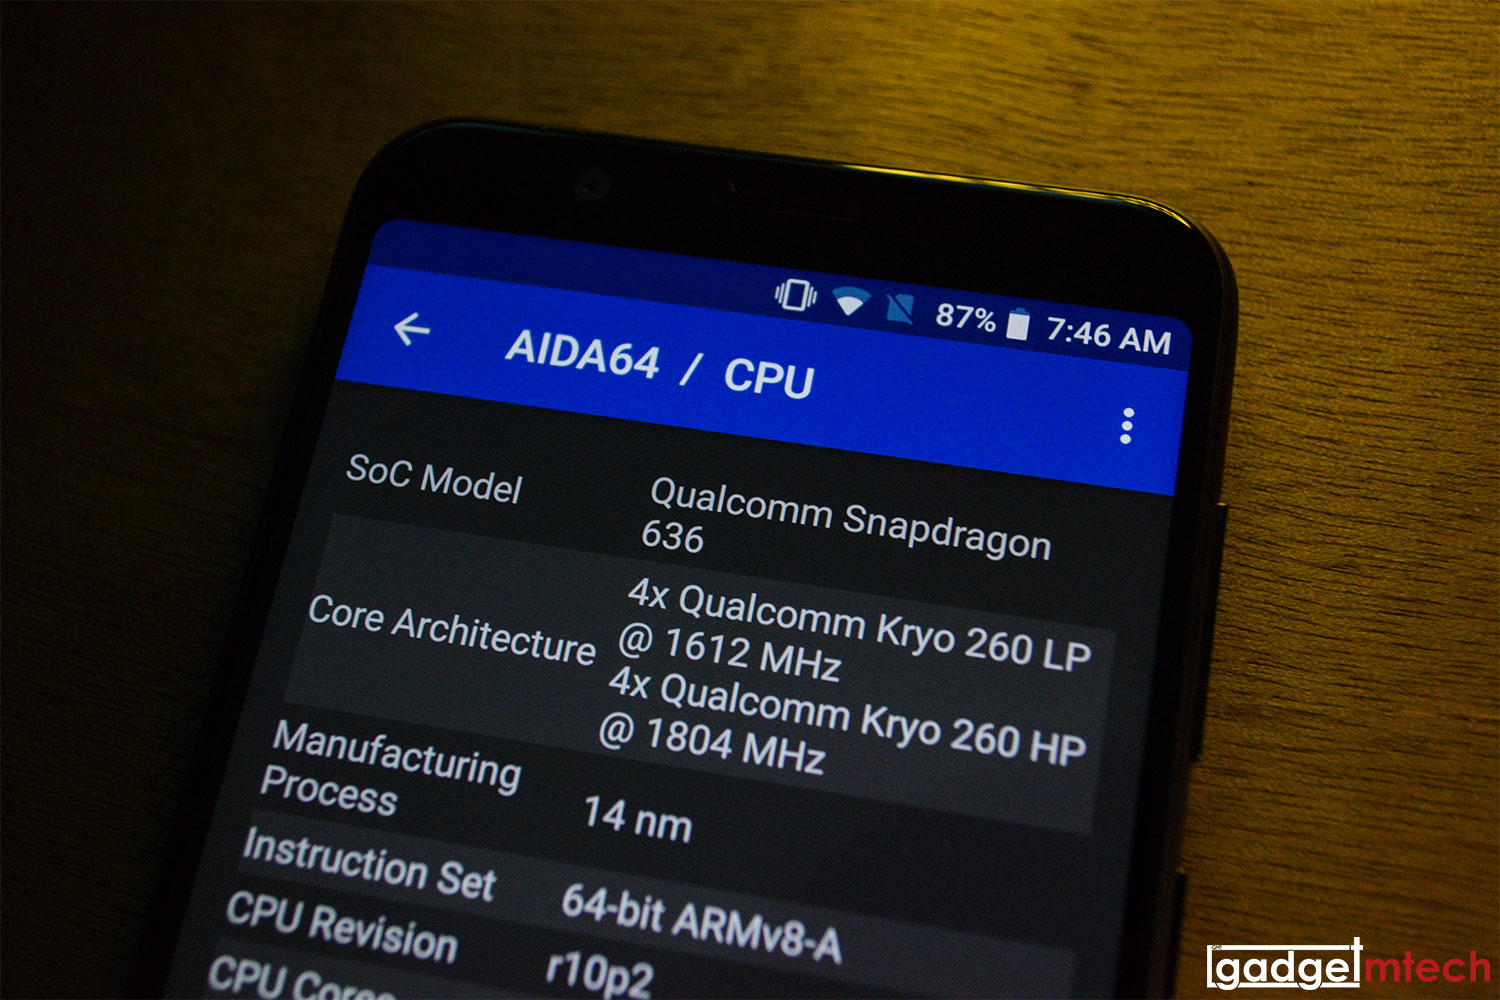 ASUS ZenFone Max Pro (M1) Review: Nailed It!